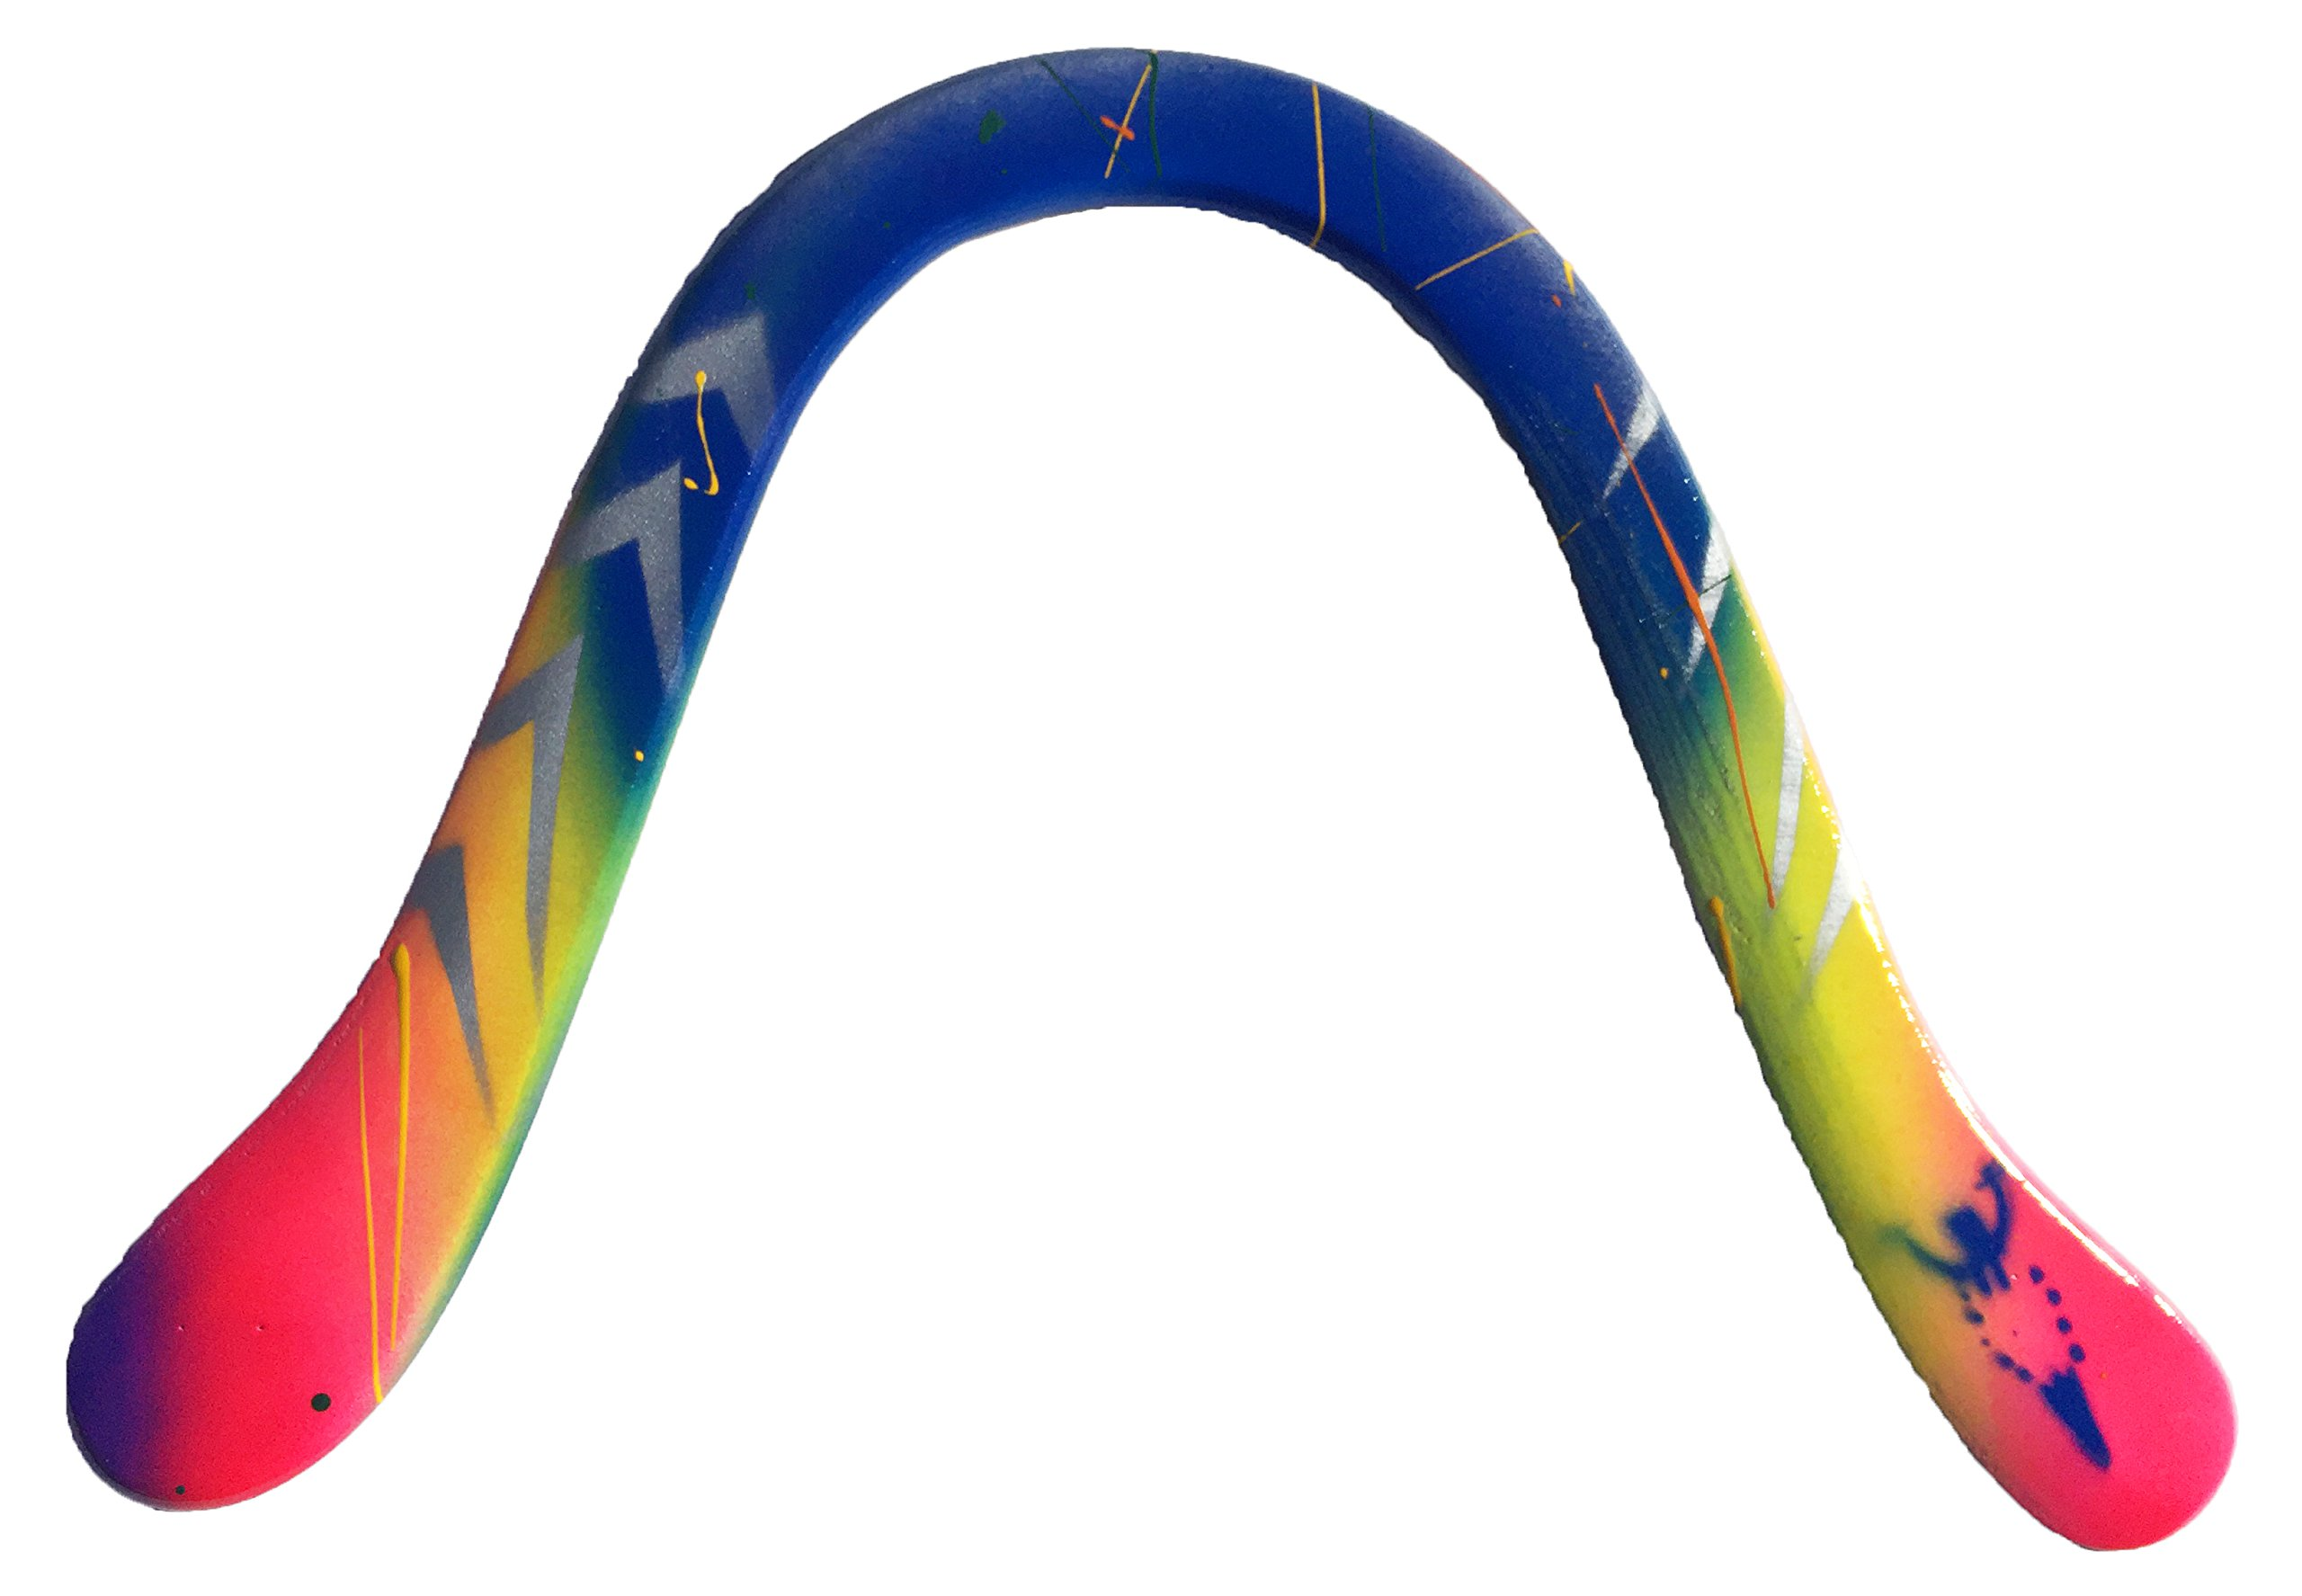 Delicate Arch Special Edition Wooden Boomerangs. Large Hook Boomerangs with weights inserted in the tips for extra distance. Range of 55-60 Meters. Ideal for Men above 15 years old.